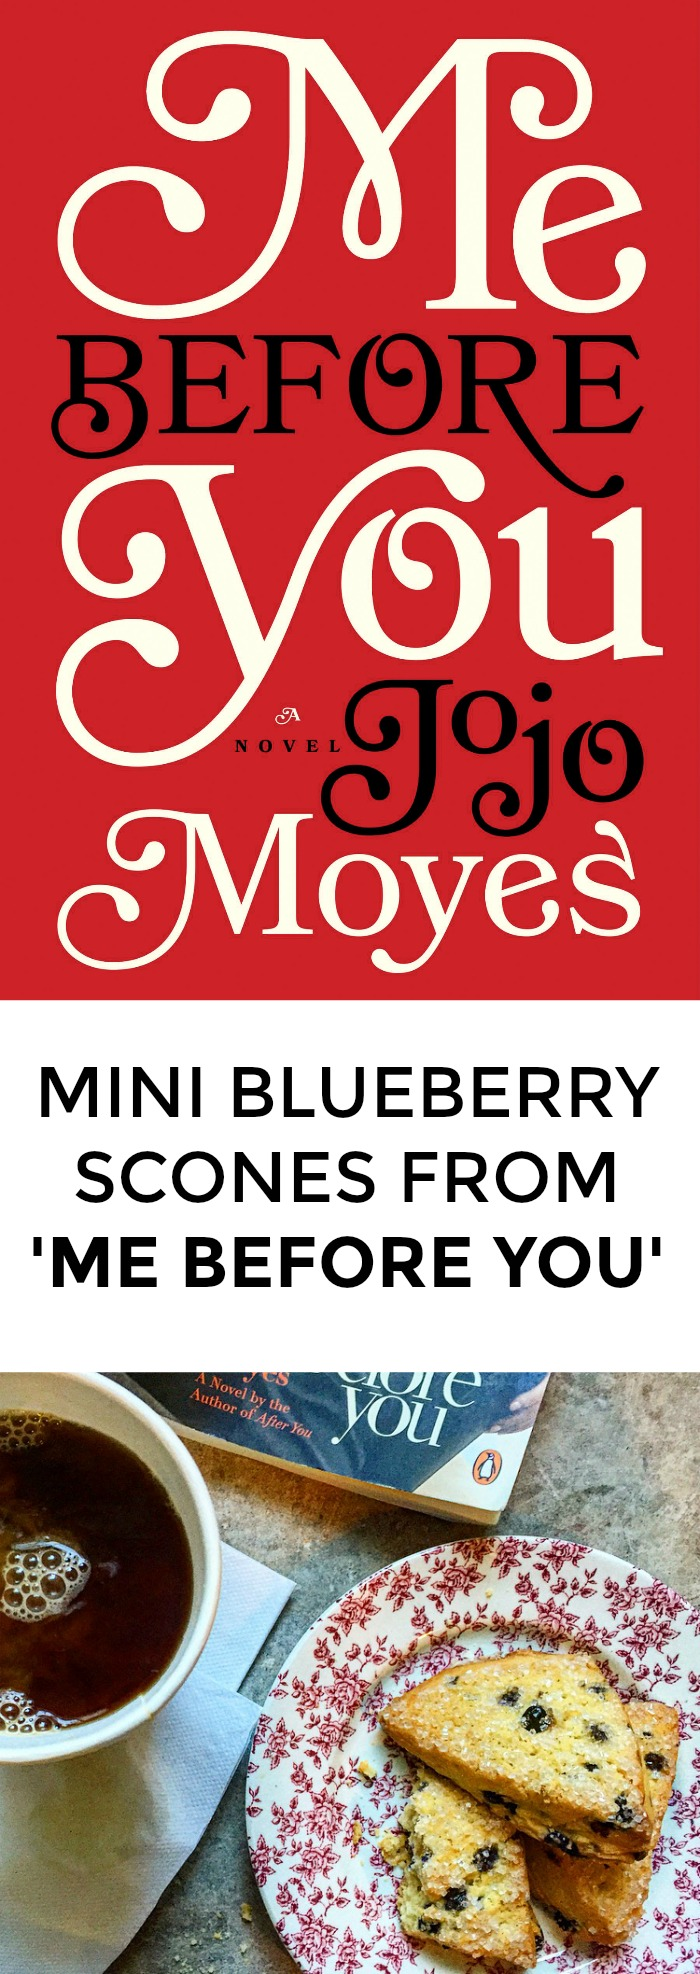 Looking for a recipe from 'Me Before You'? Love Jojo Moyes and want to win book club? Click through for a great blueberry scone recipe inspired by 'Me Before You'!